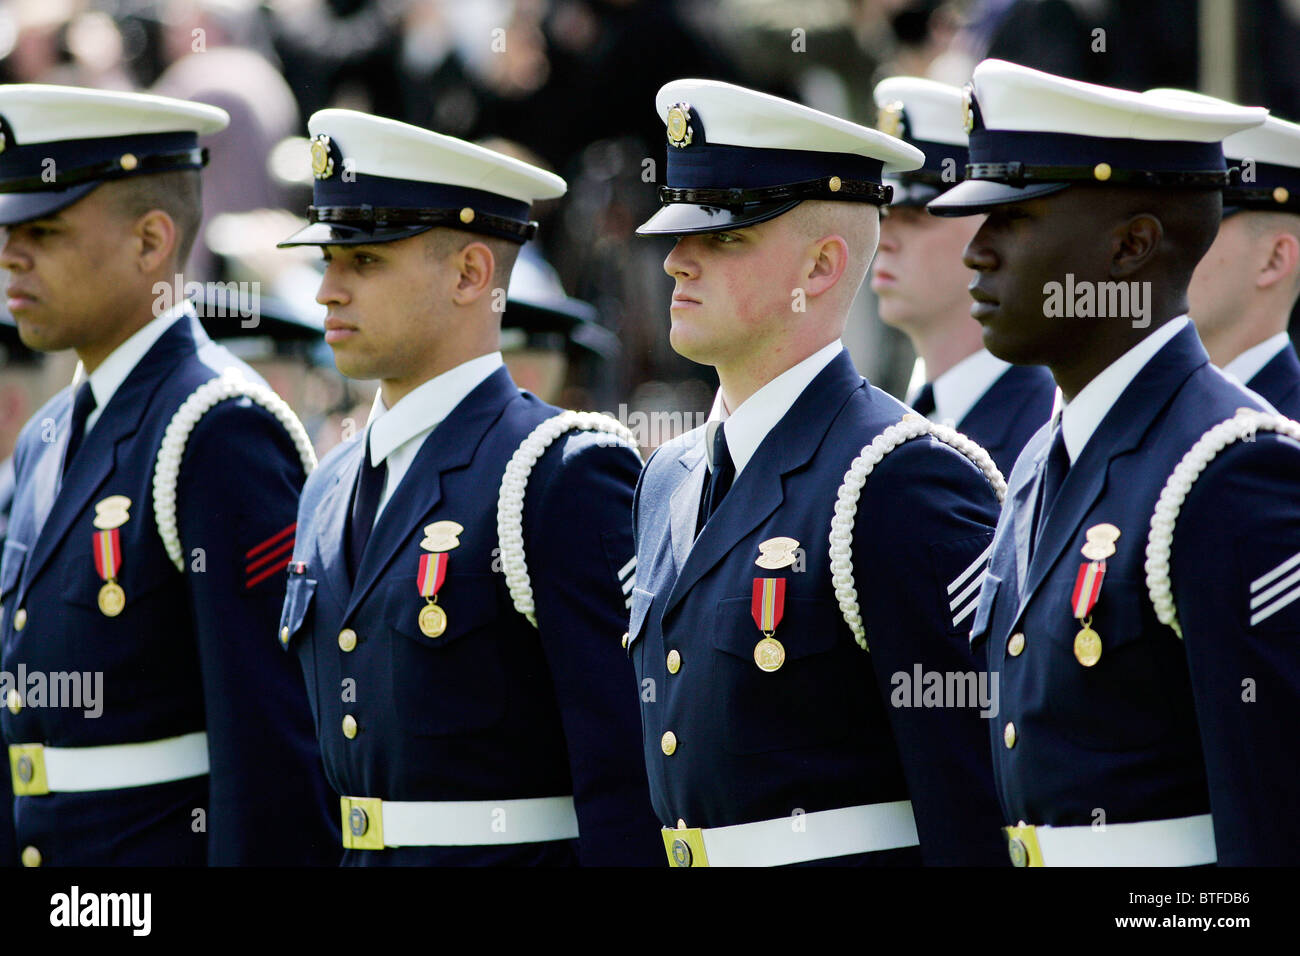 Military officers of the Army, Navy and Airforce form Honor Guard at The White House, Washington DC, USA - Stock Image